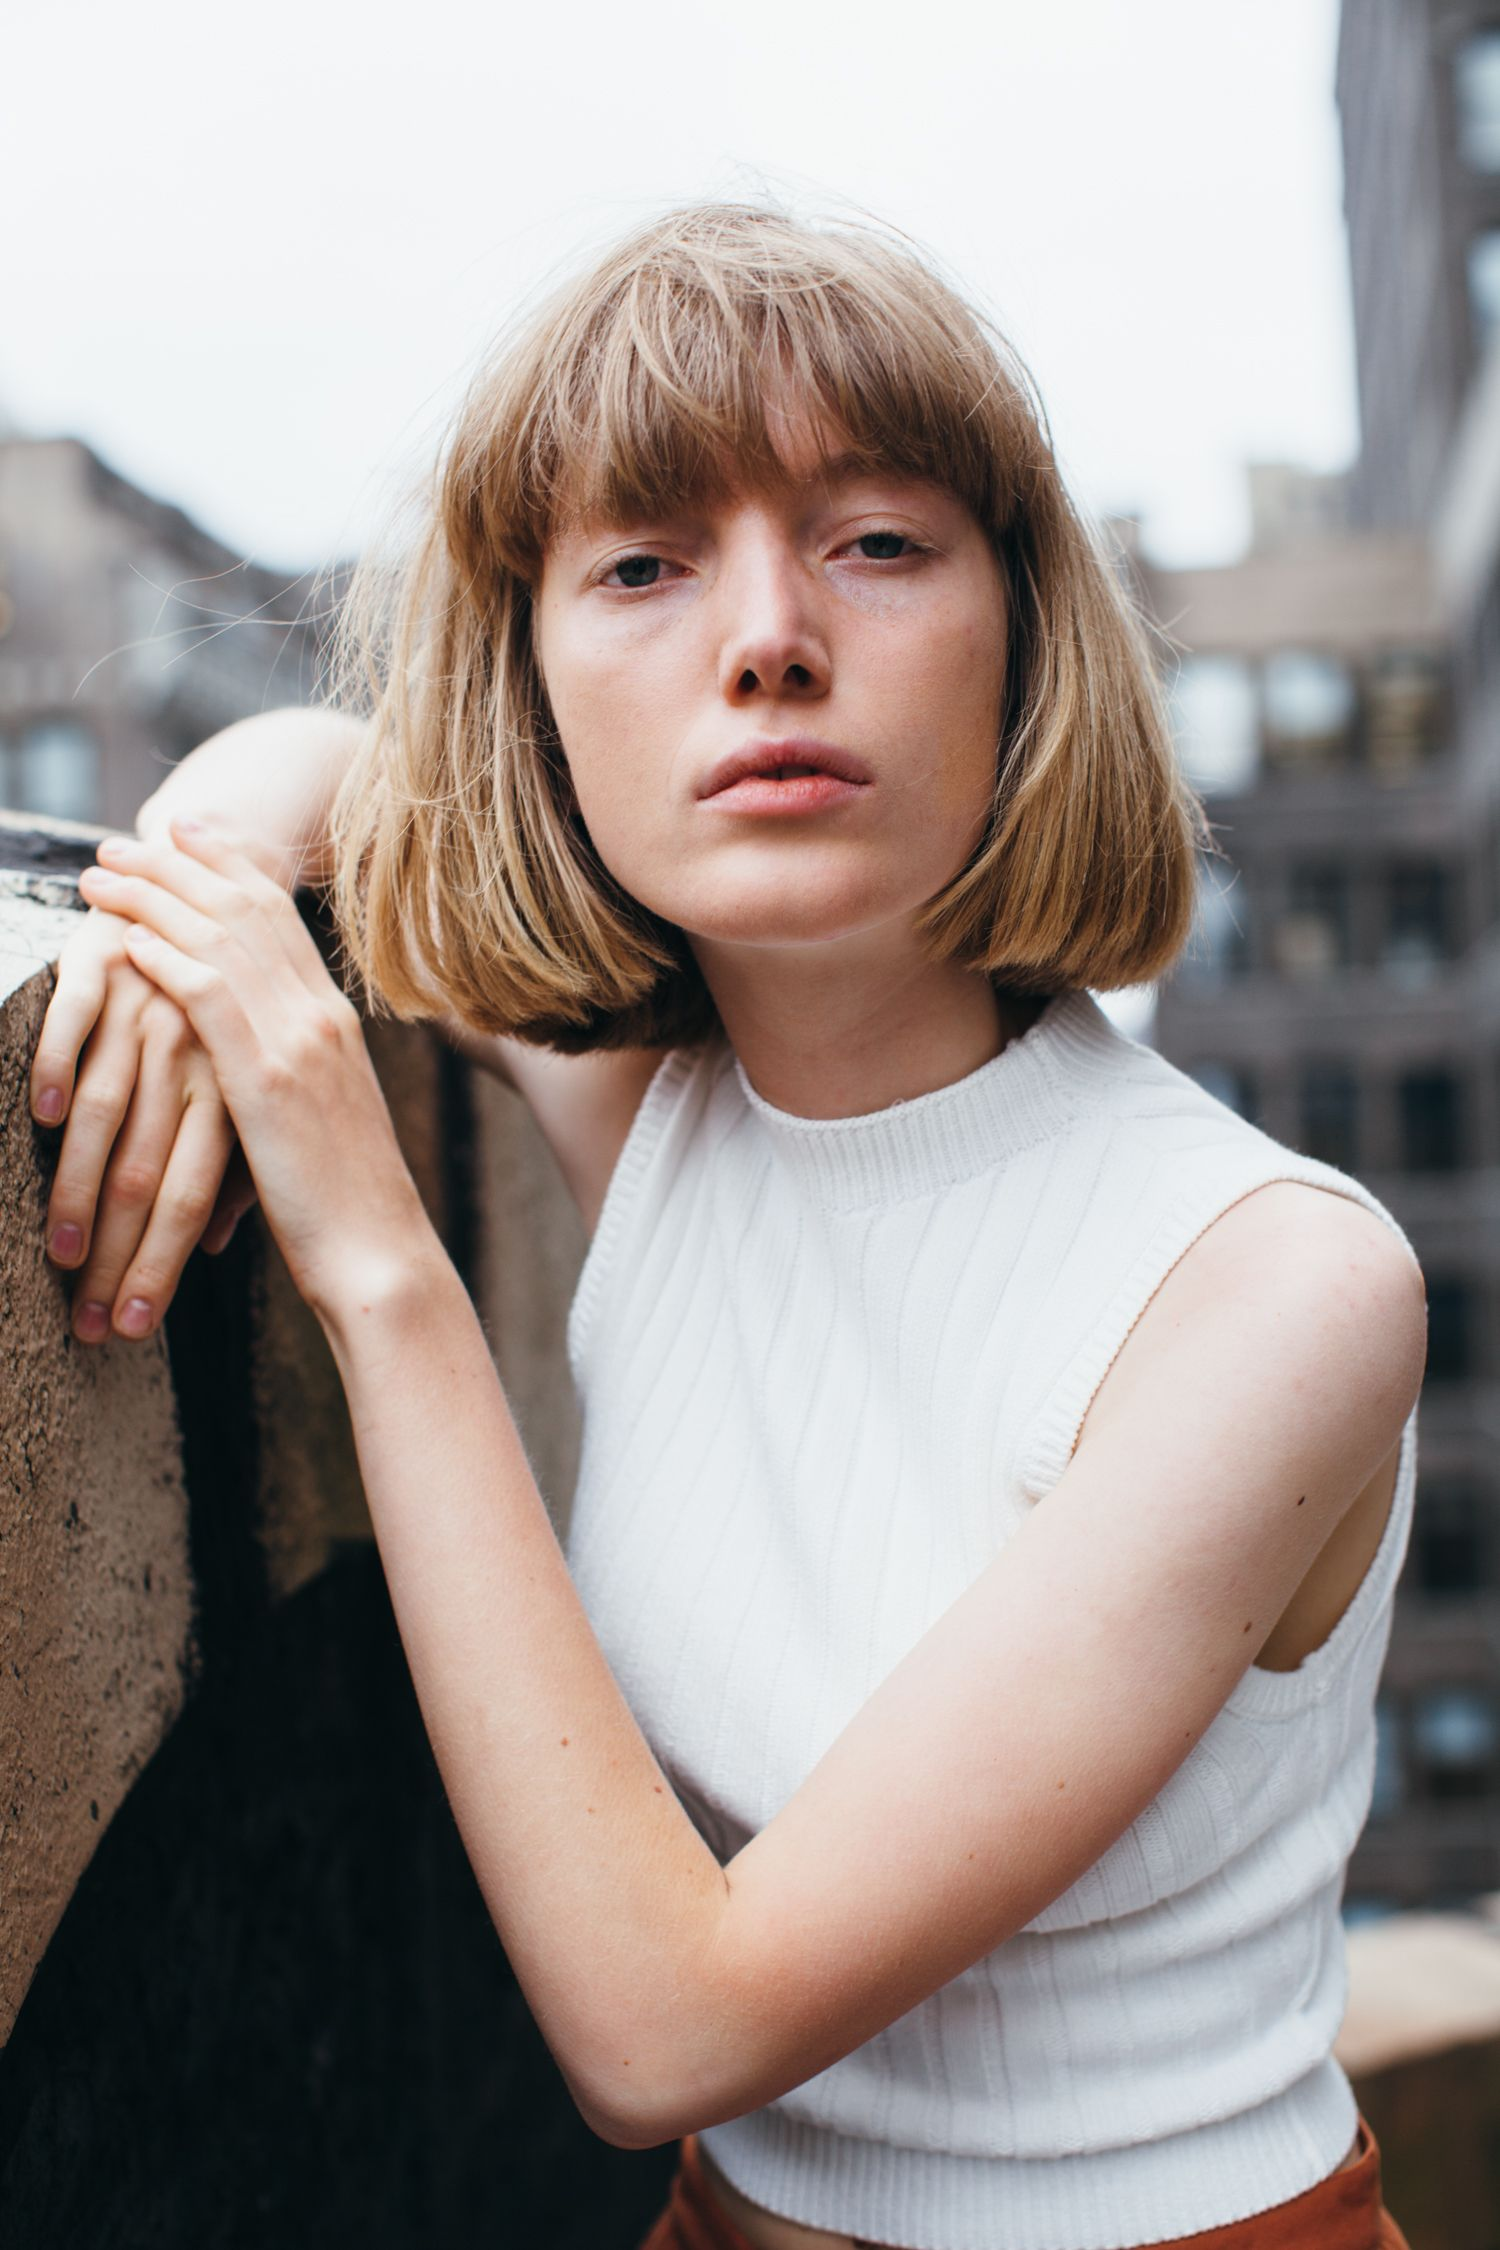 , We catch up with Lou Schoof from New York Models to talk designer dreams, ironic emoji usage and growing up too fast., Hot Models Blog 2020, Hot Models Blog 2020